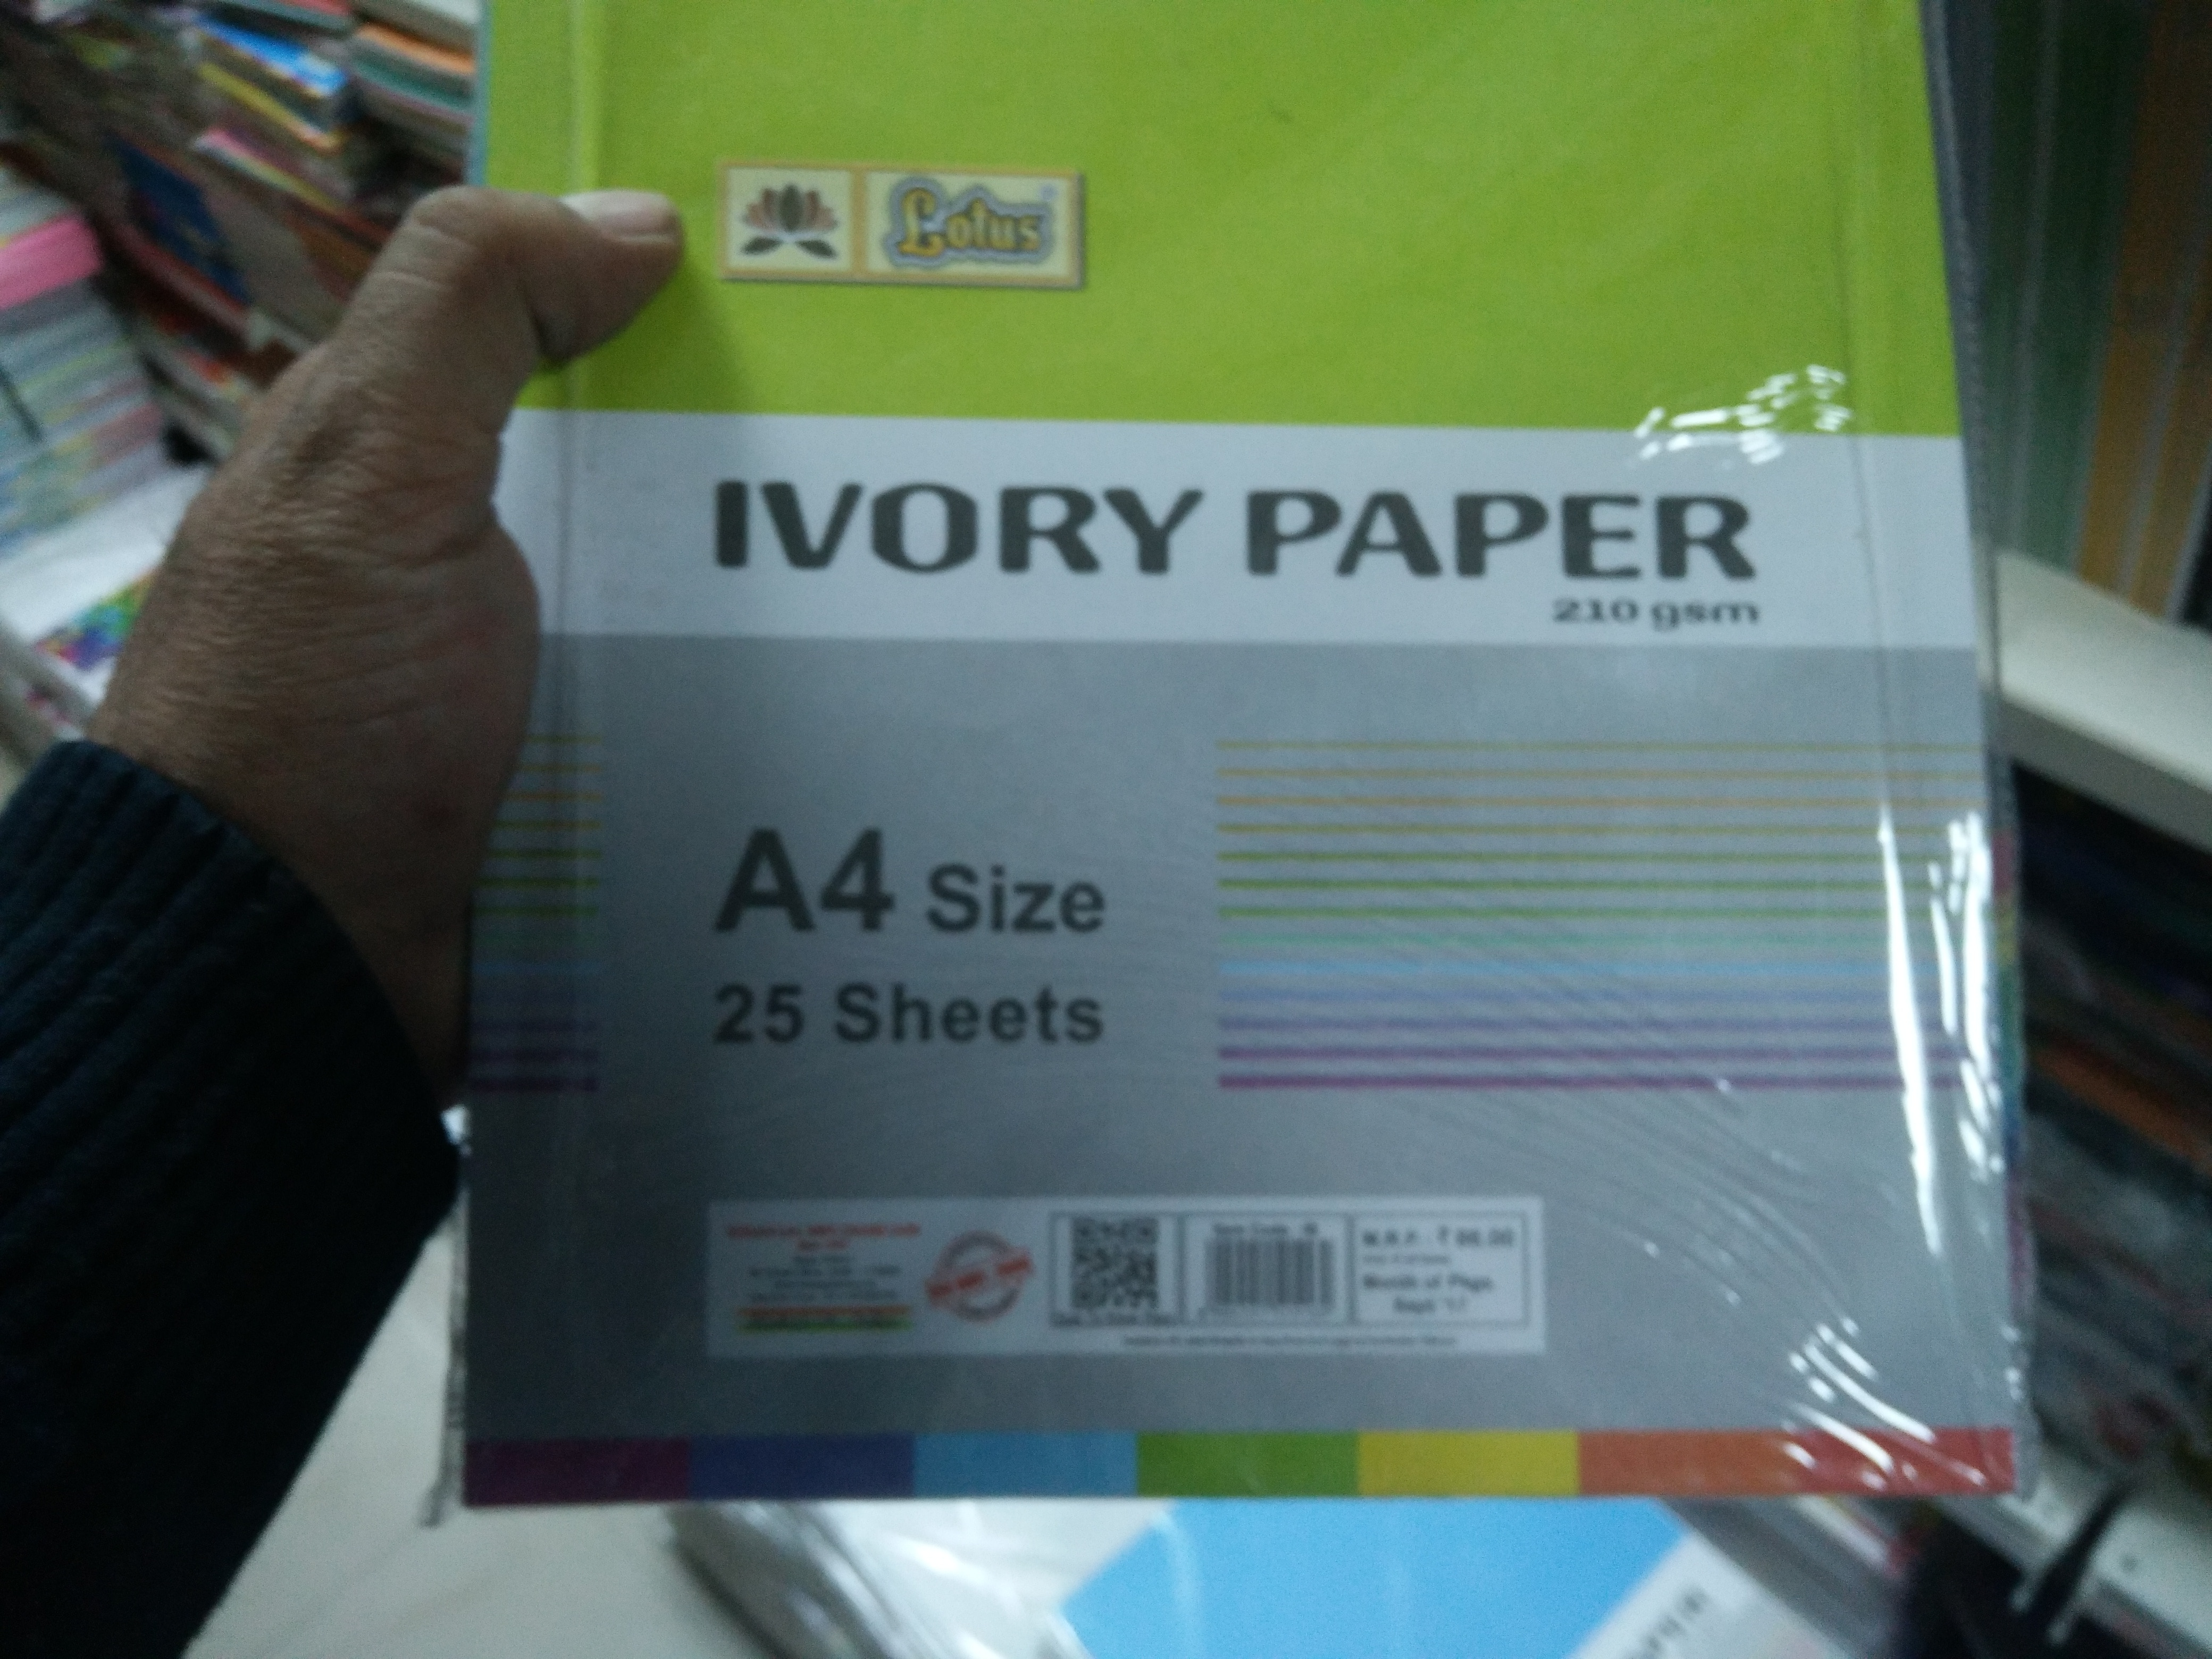 A4 size 25 sheets 21